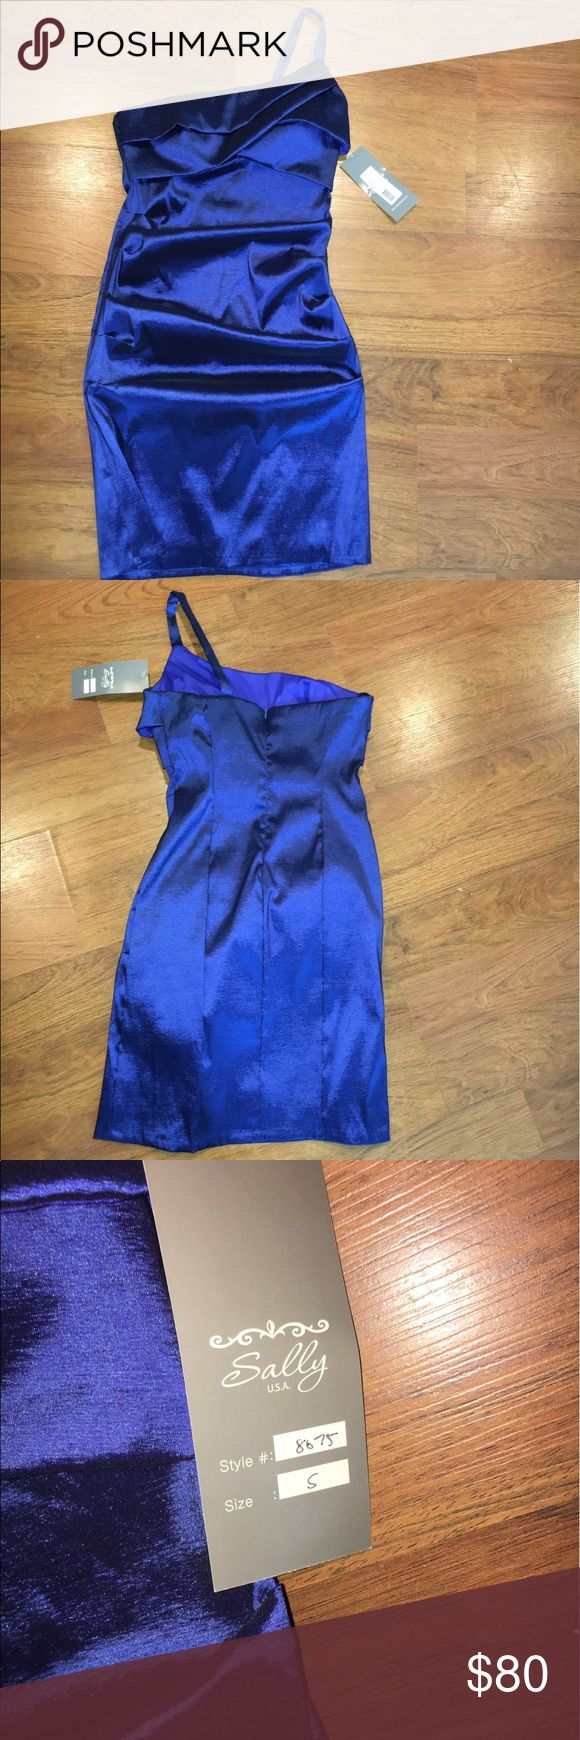 Sally one shoulder Royal Blue formal dress Brand new with tags, never worn. Great for formal events. Size small Sally USA Dresses